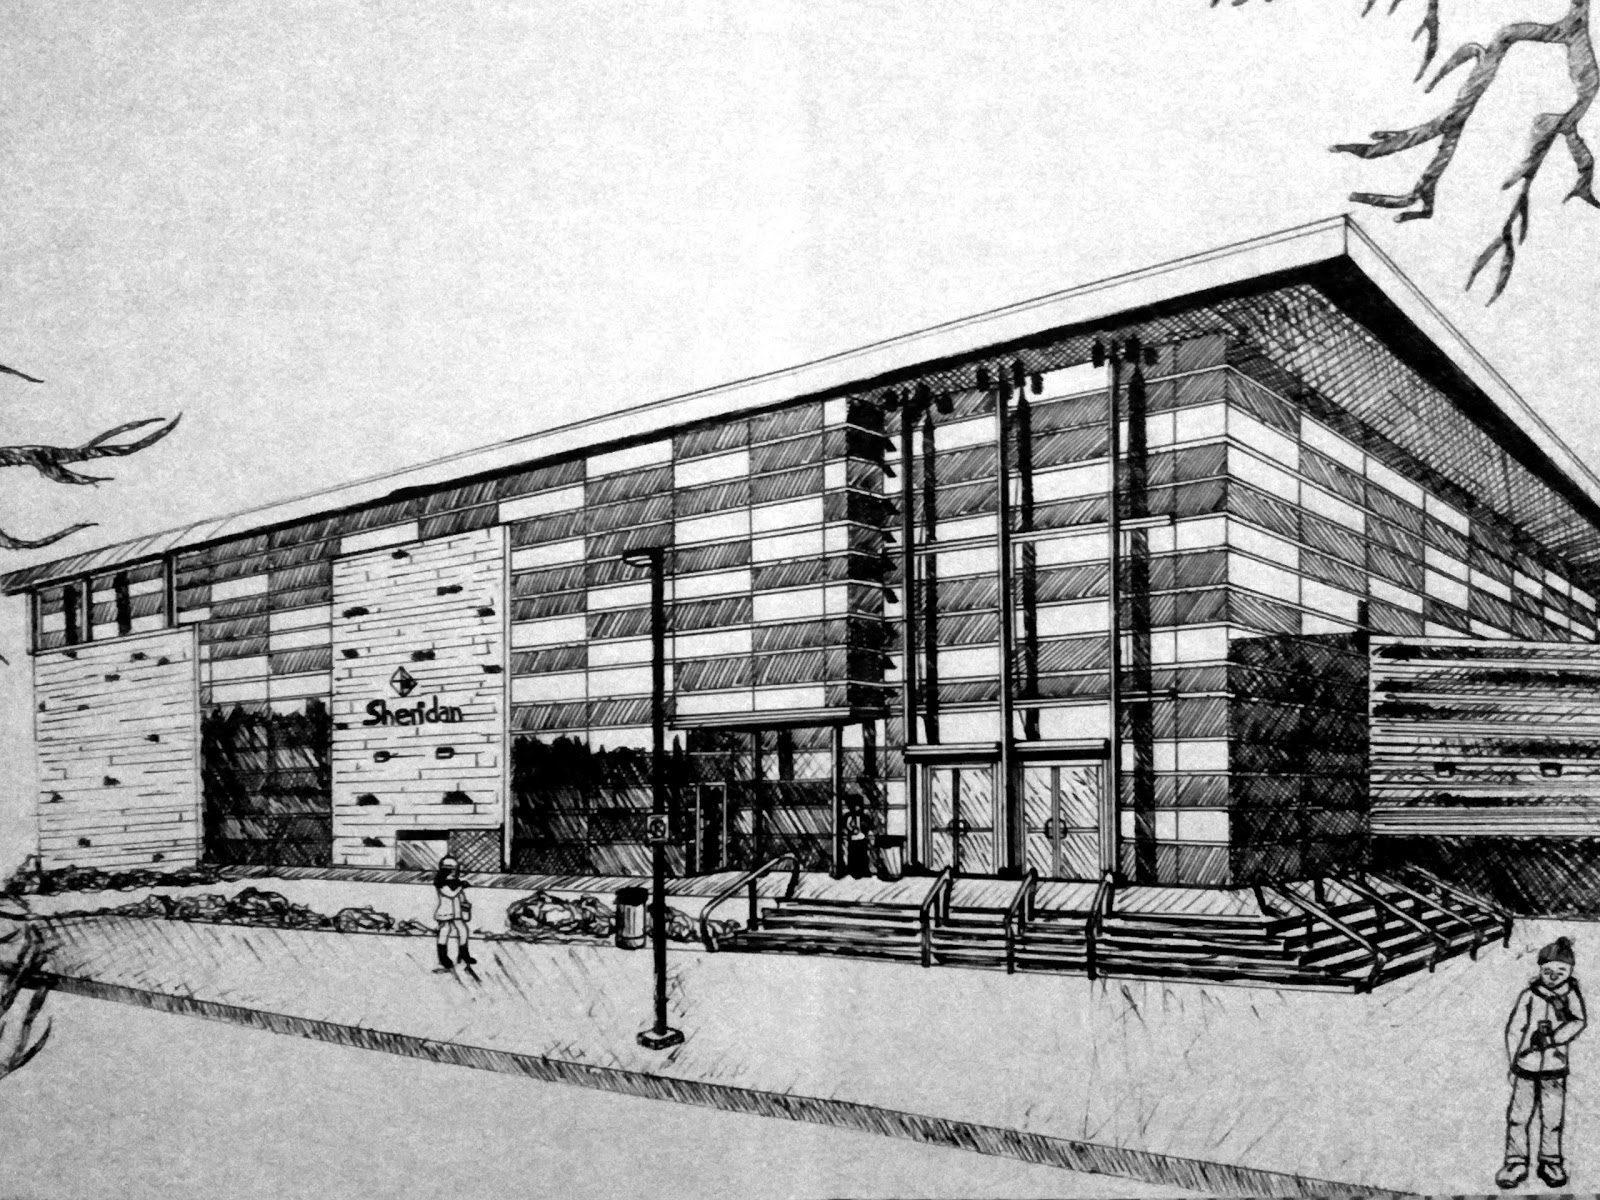 architecture buildings drawings. Anim8r X: Sheridan College - Architecture Drawing Buildings Drawings